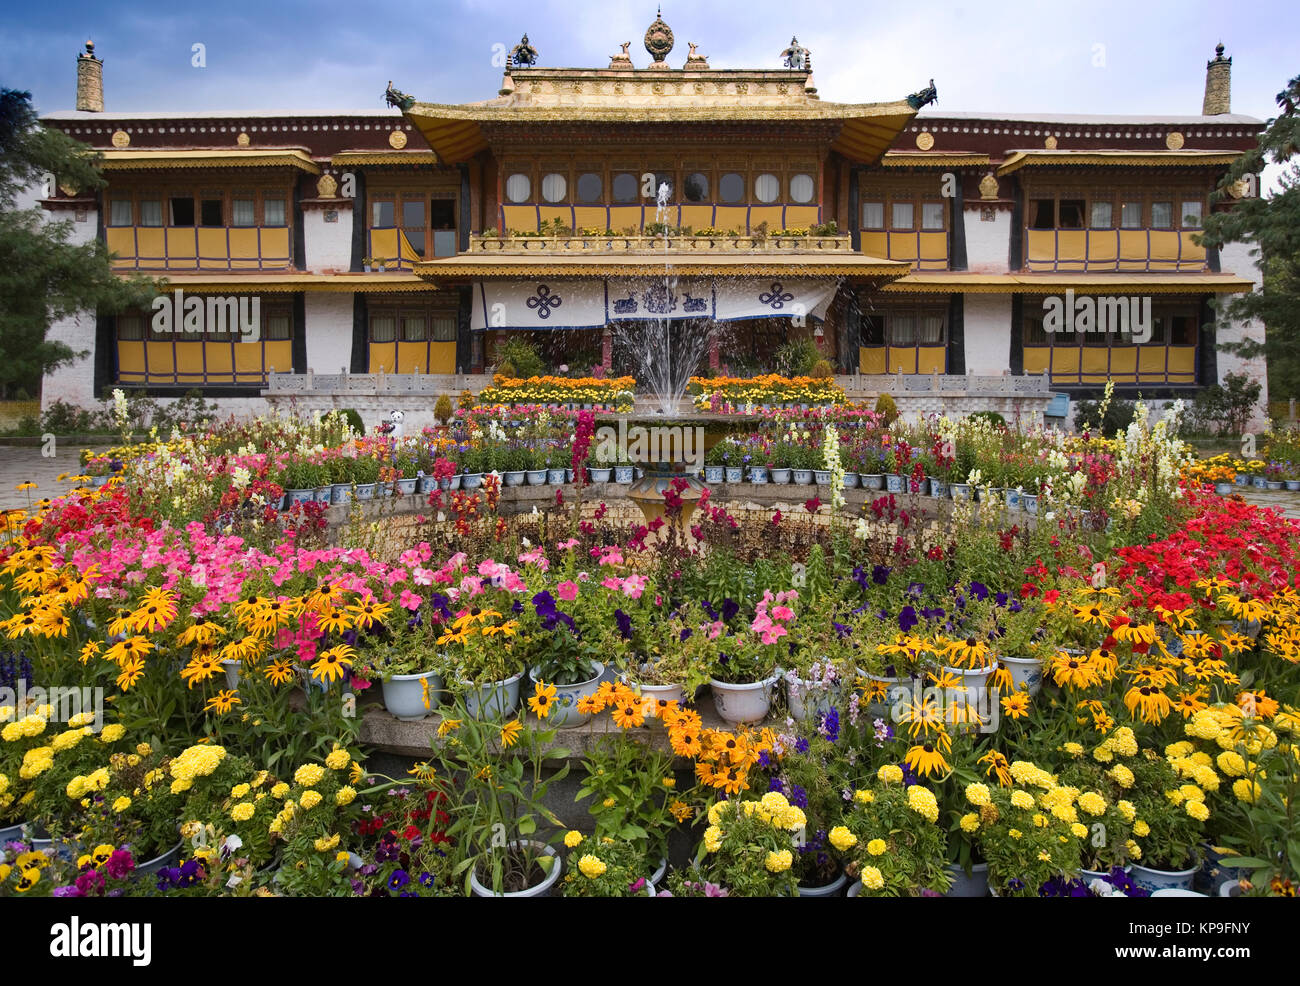 The Summer Palace of the Dali Lama in the Norbulingka in Lhasa in Tibet Autonomous region of China. - Stock Image